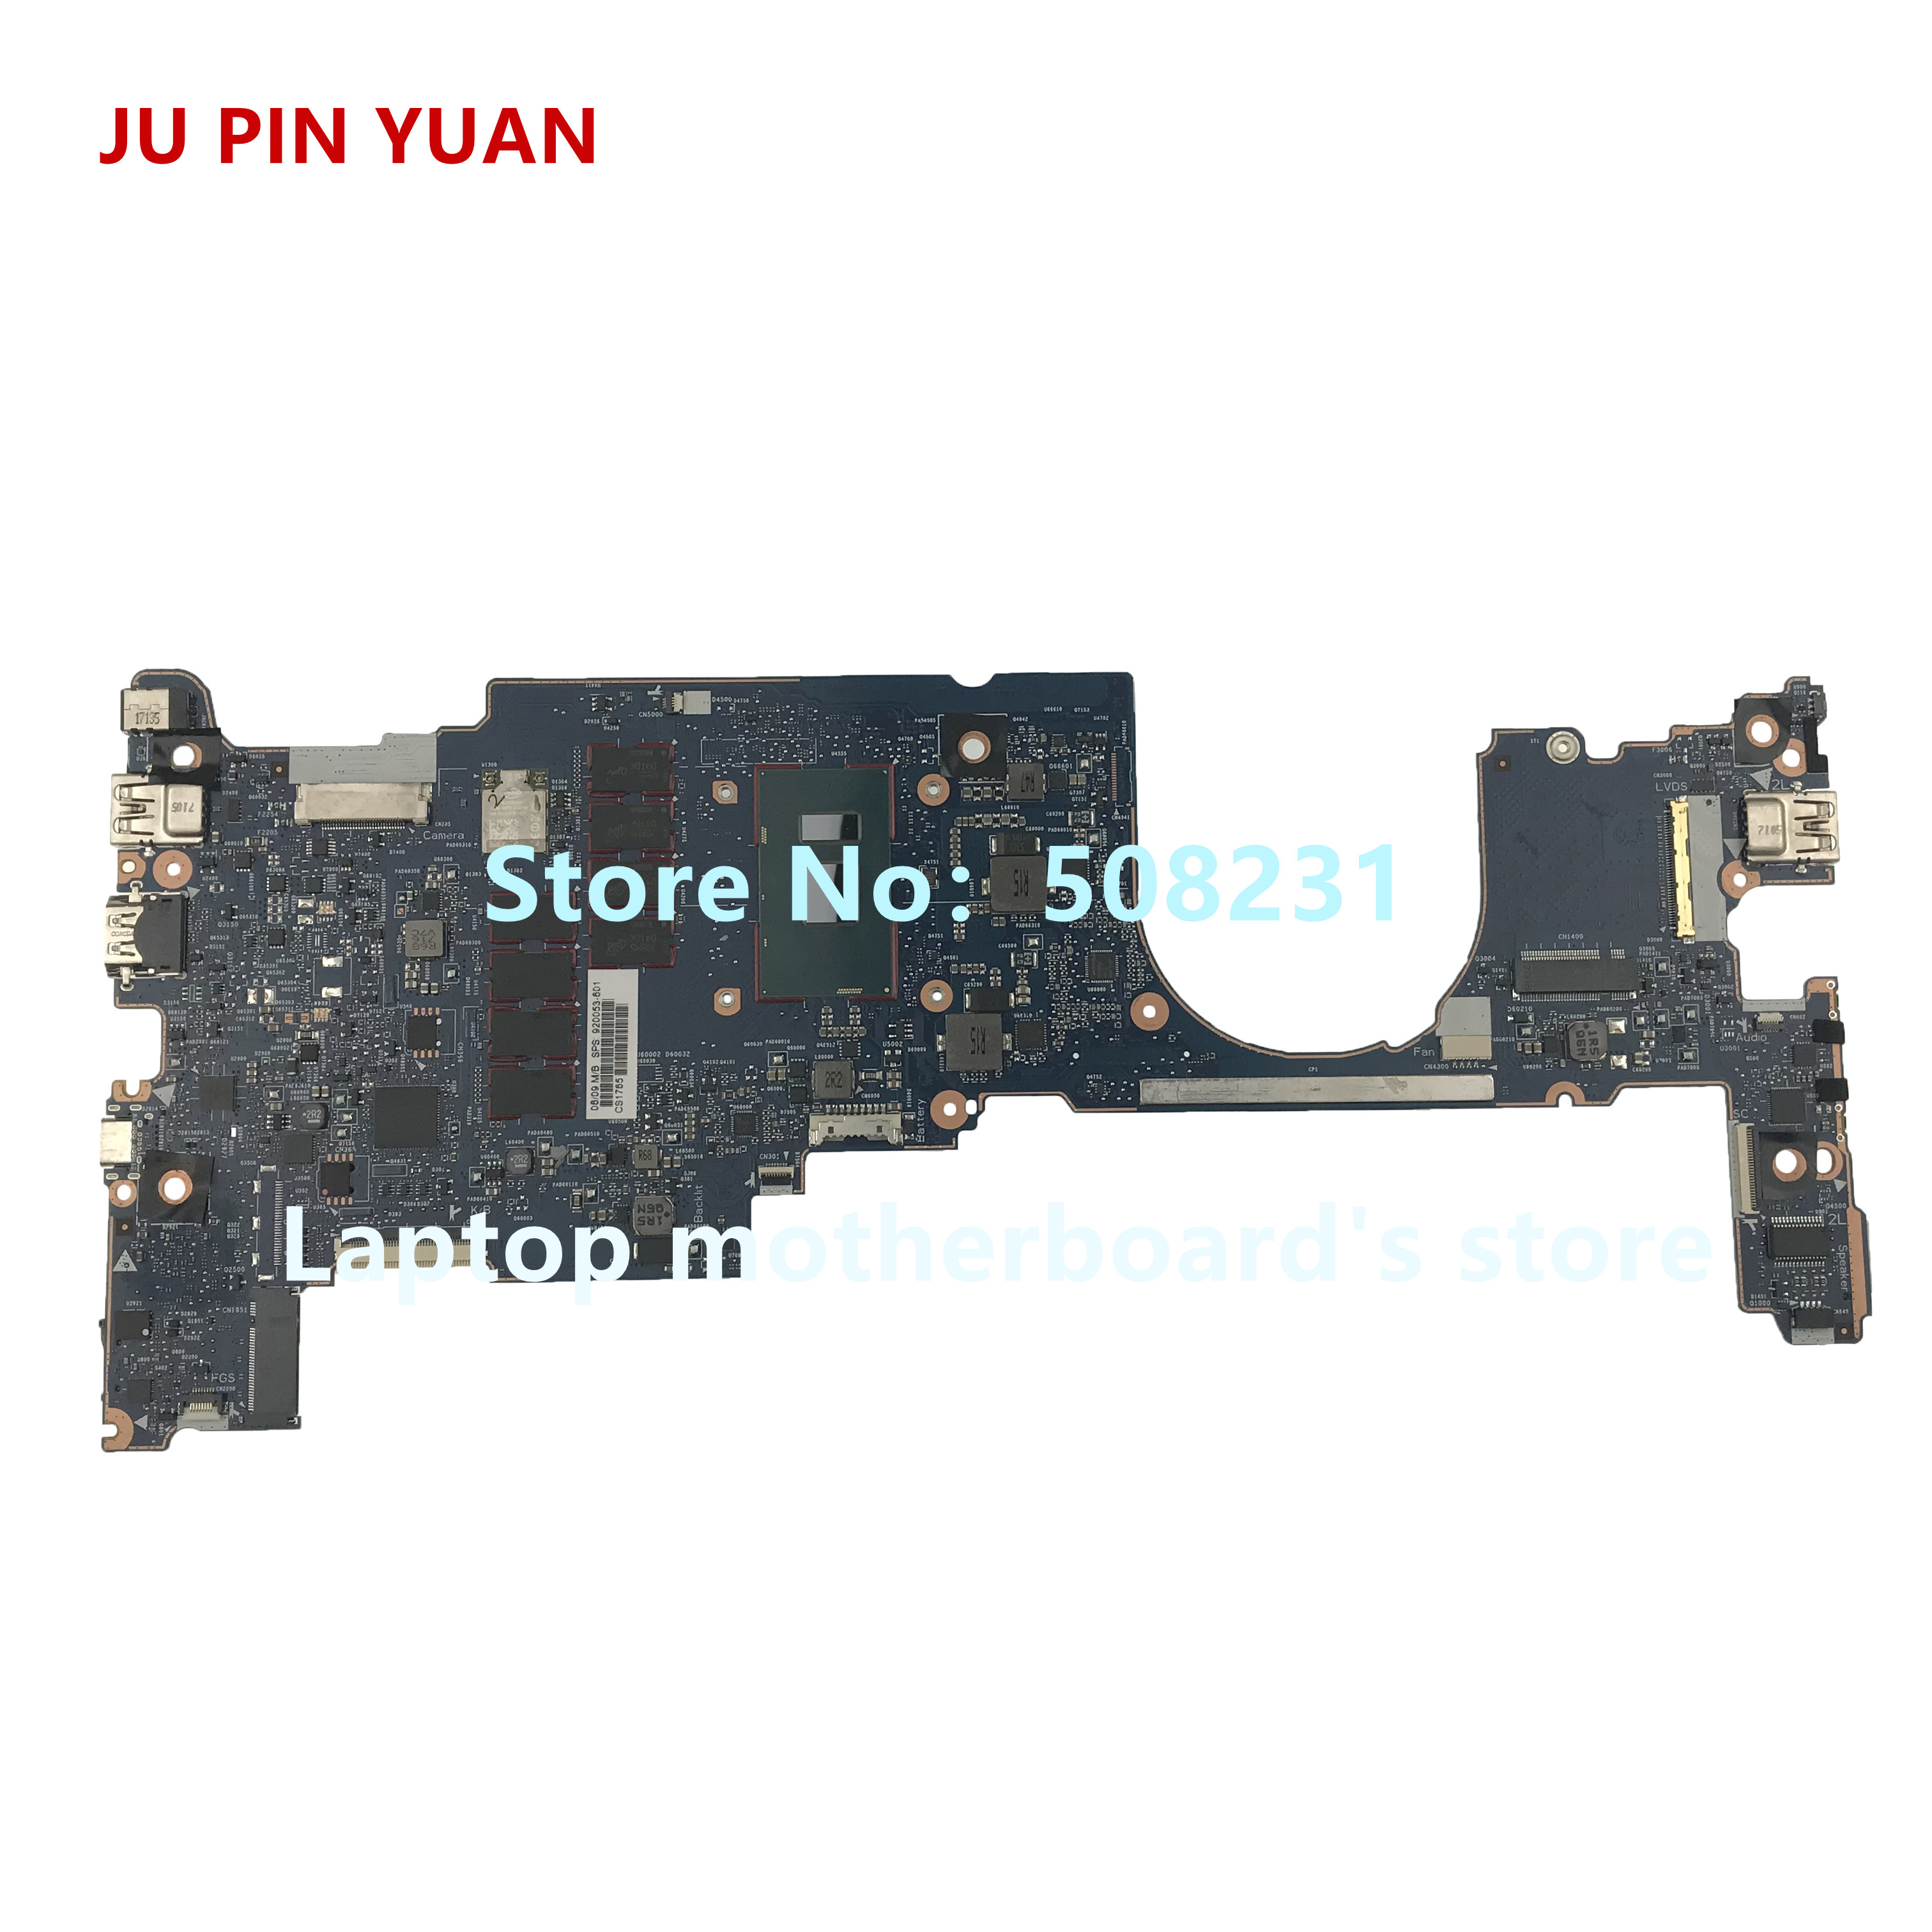 Laptop Accessories Ju Pin Yuan 920053-601 920053-001 For Hp Elitebook X360 1030 G2 Laptop Motherboard 6050a2848001-mb-a01 I5-7300u 8gb Fully Tested Sales Of Quality Assurance Computer & Office